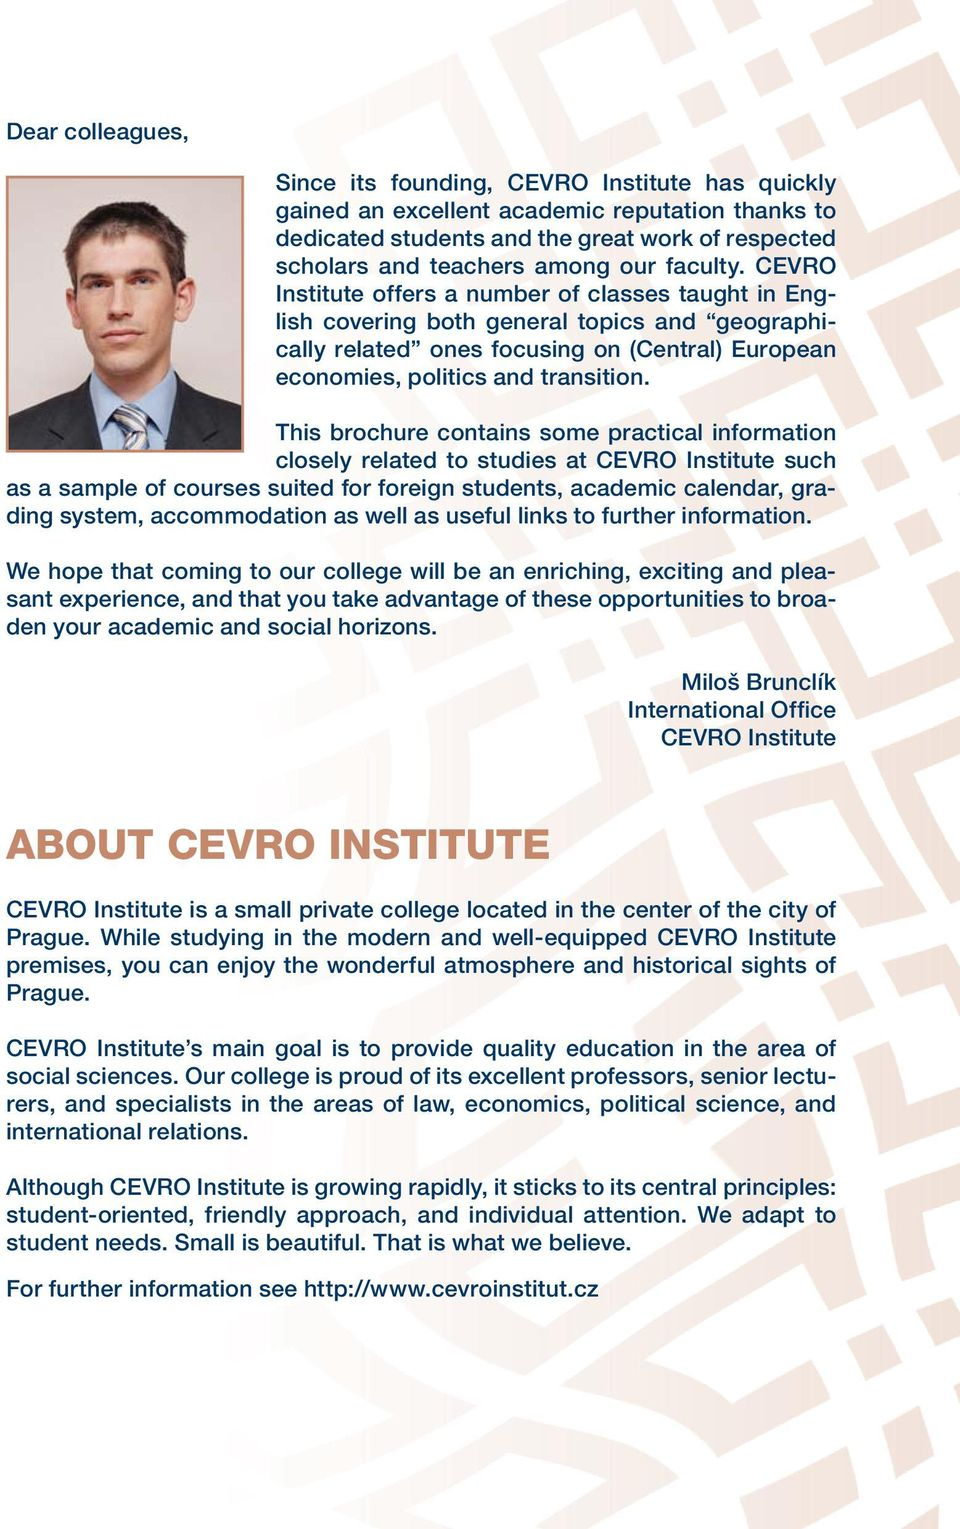 This brochure contains some practical information closely related to studies at CEVRO Institute such as a sample of courses suited for foreign students, academic calendar, grading system,